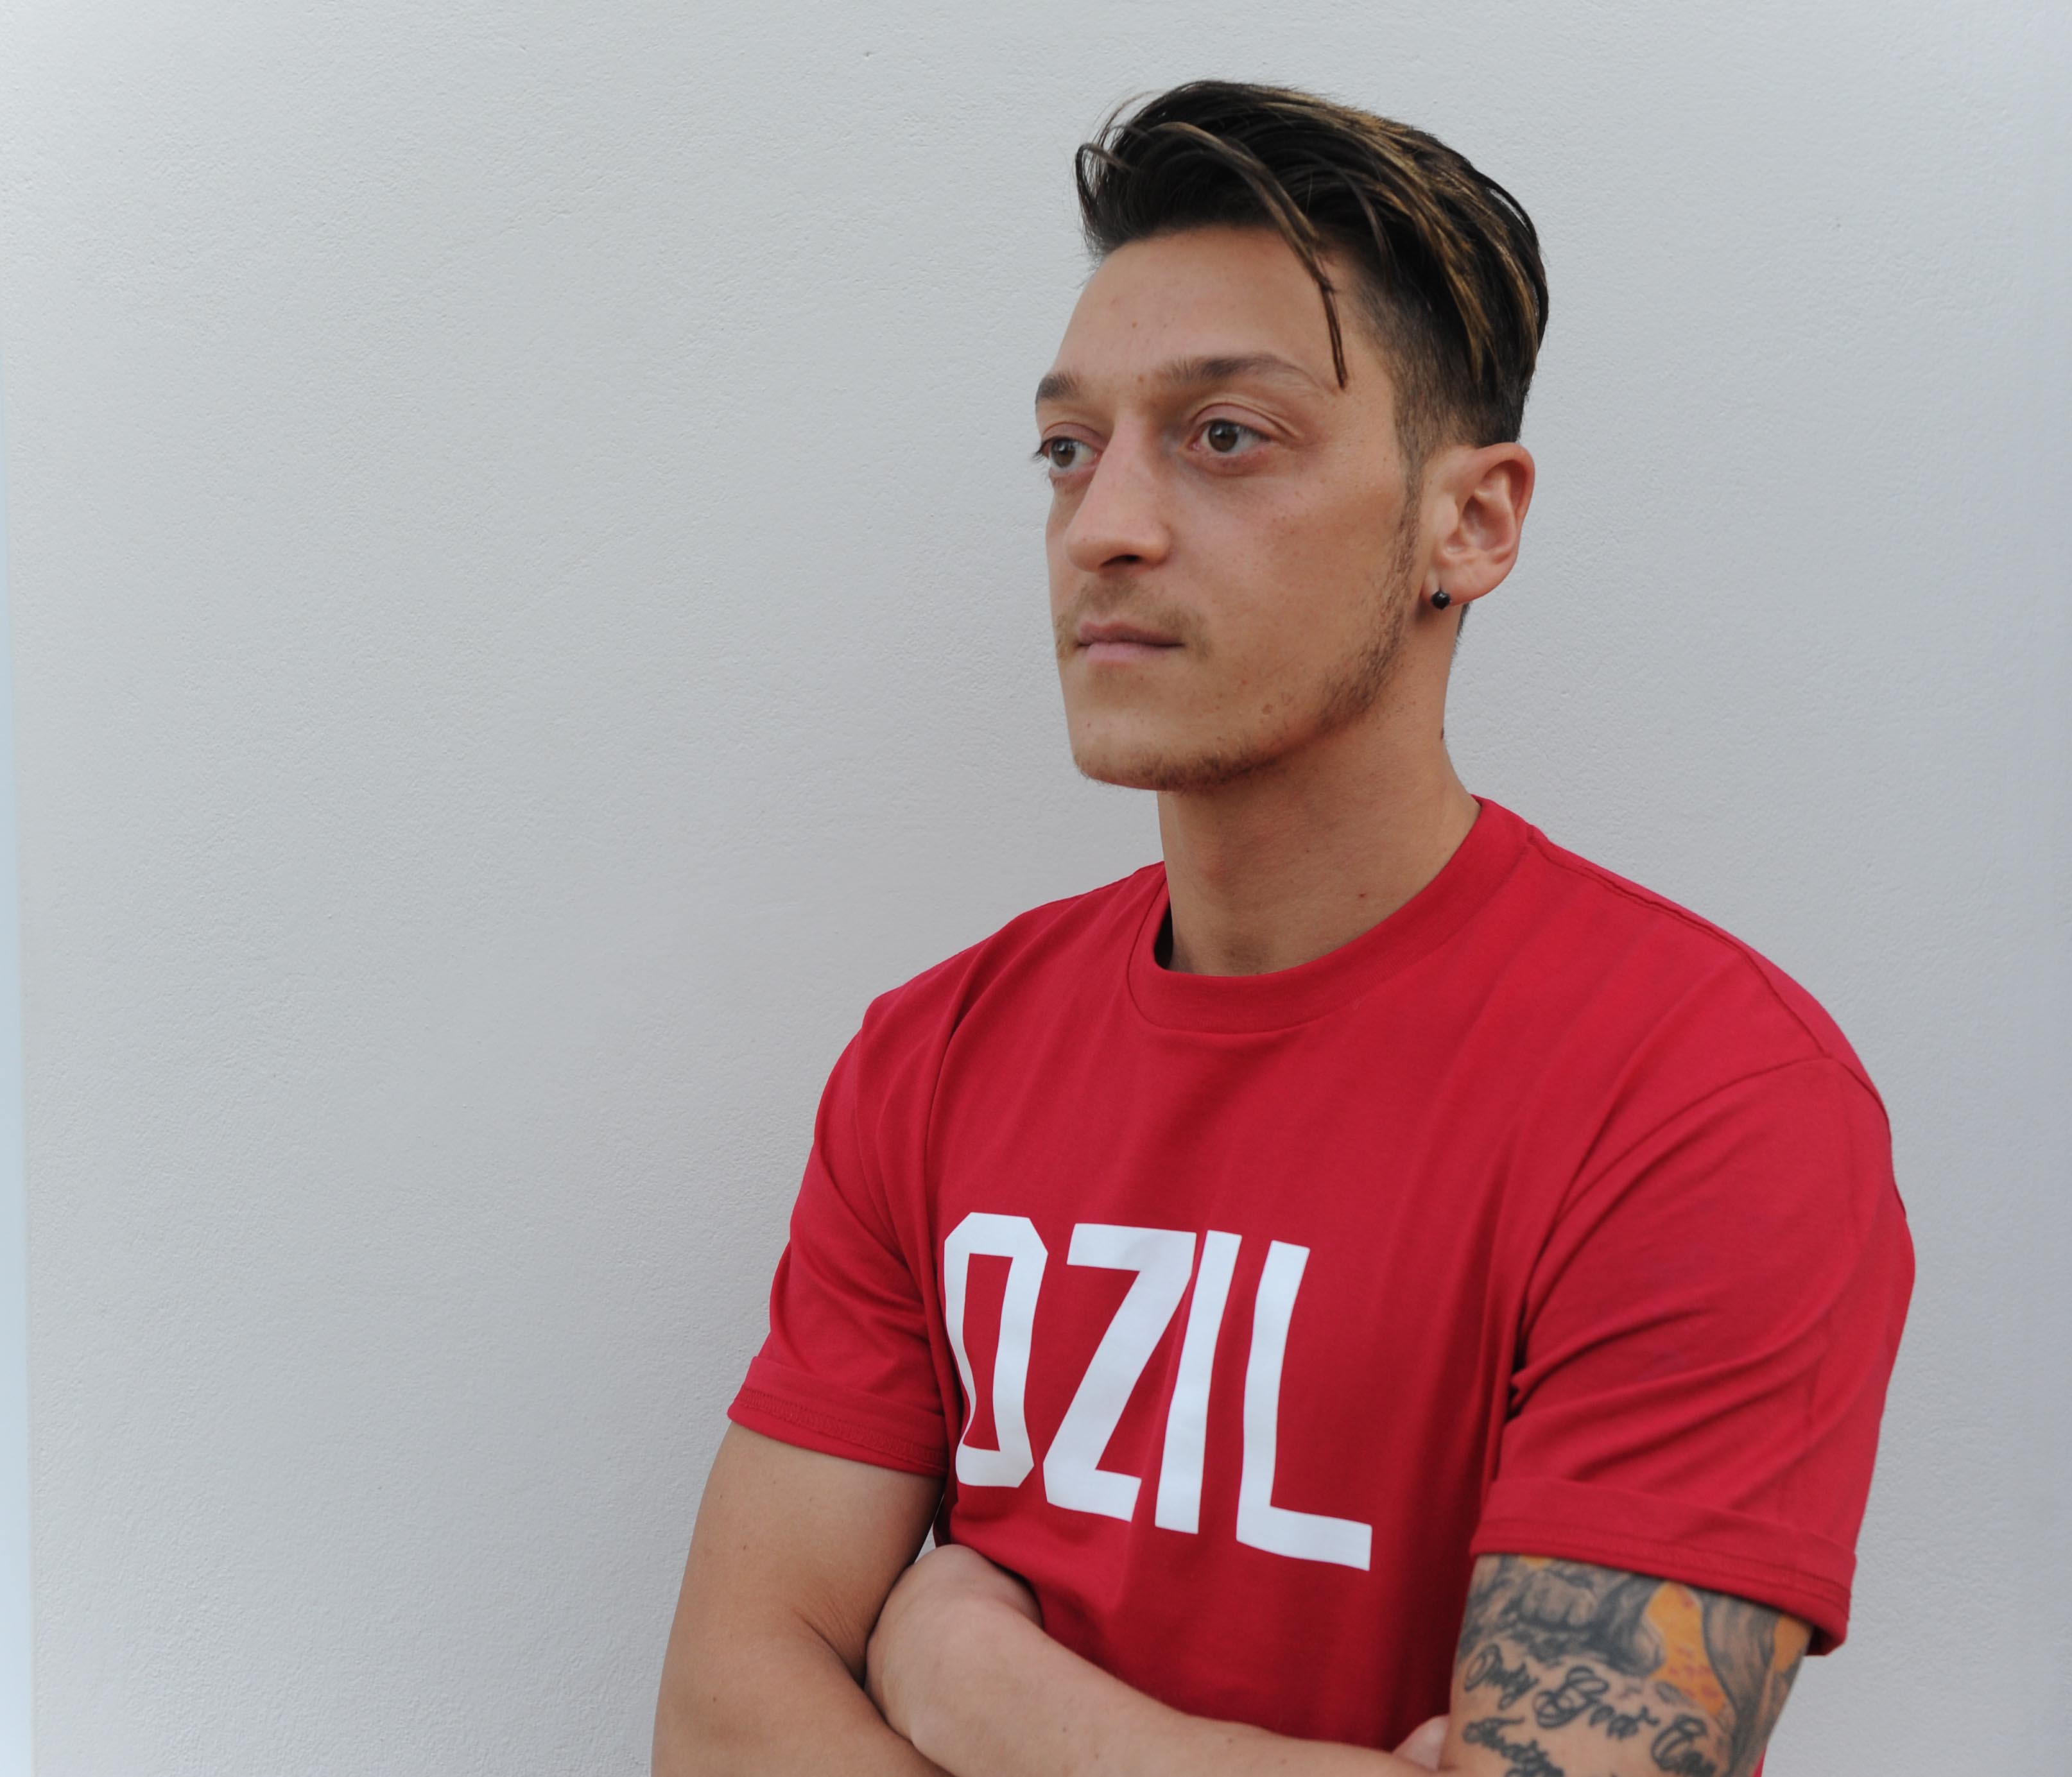 Sold Out! Mesut Ozil's fashion range sells out in less than 1 hour